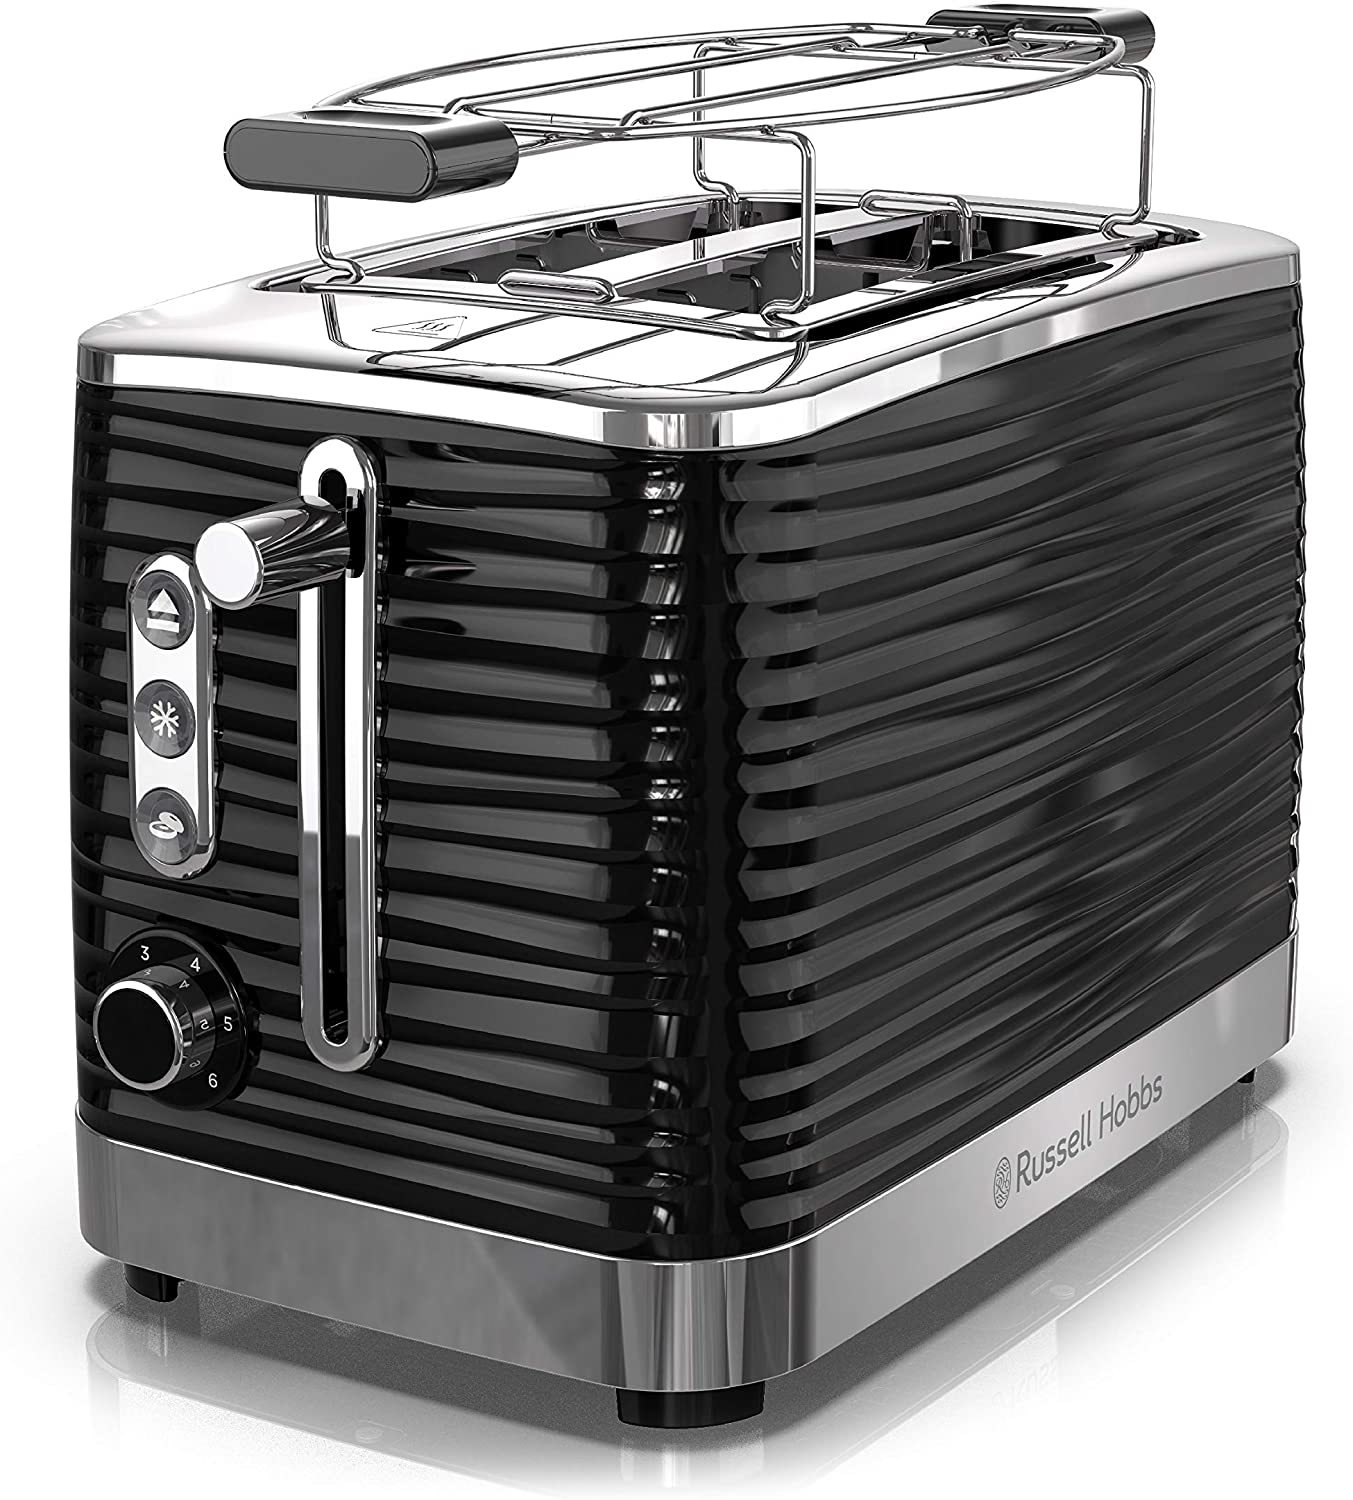 Russell Hobbs TR9350BR Coventry 2-Slice Toaster, Included Warming Rack, Black (Renewed)